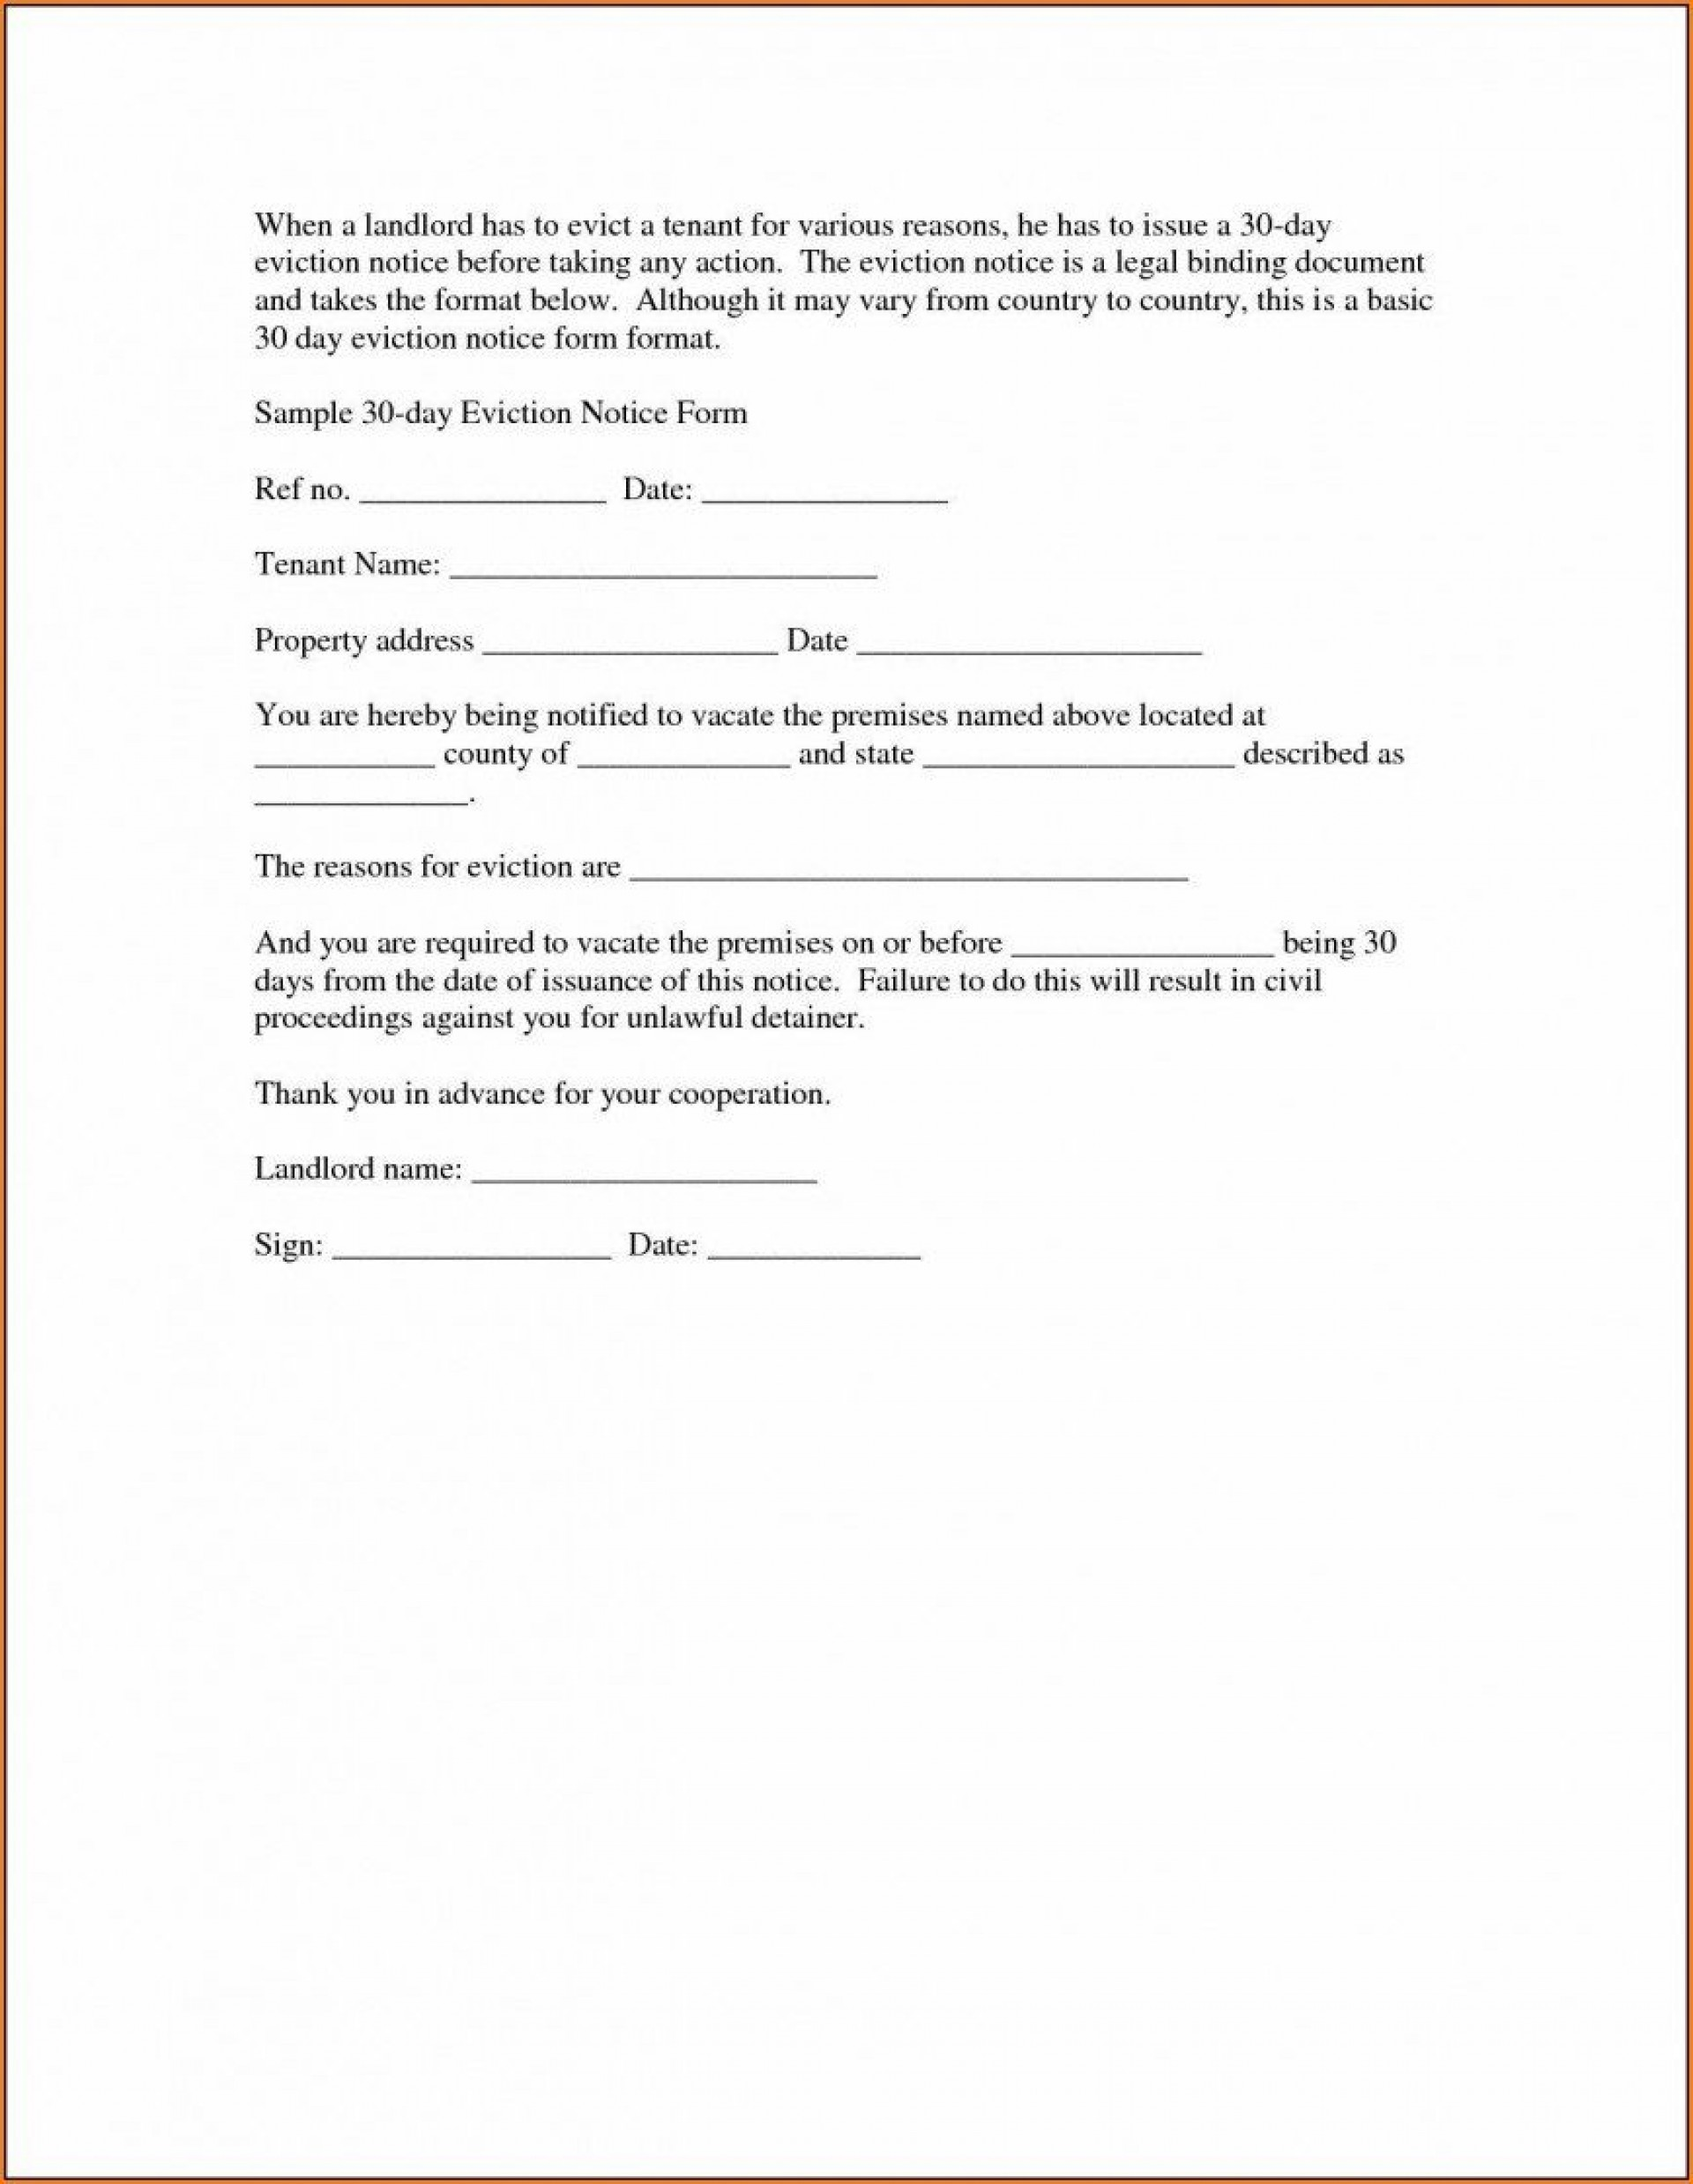 011 Fascinating 30 Day Eviction Notice Template High Def  Pdf Form1920